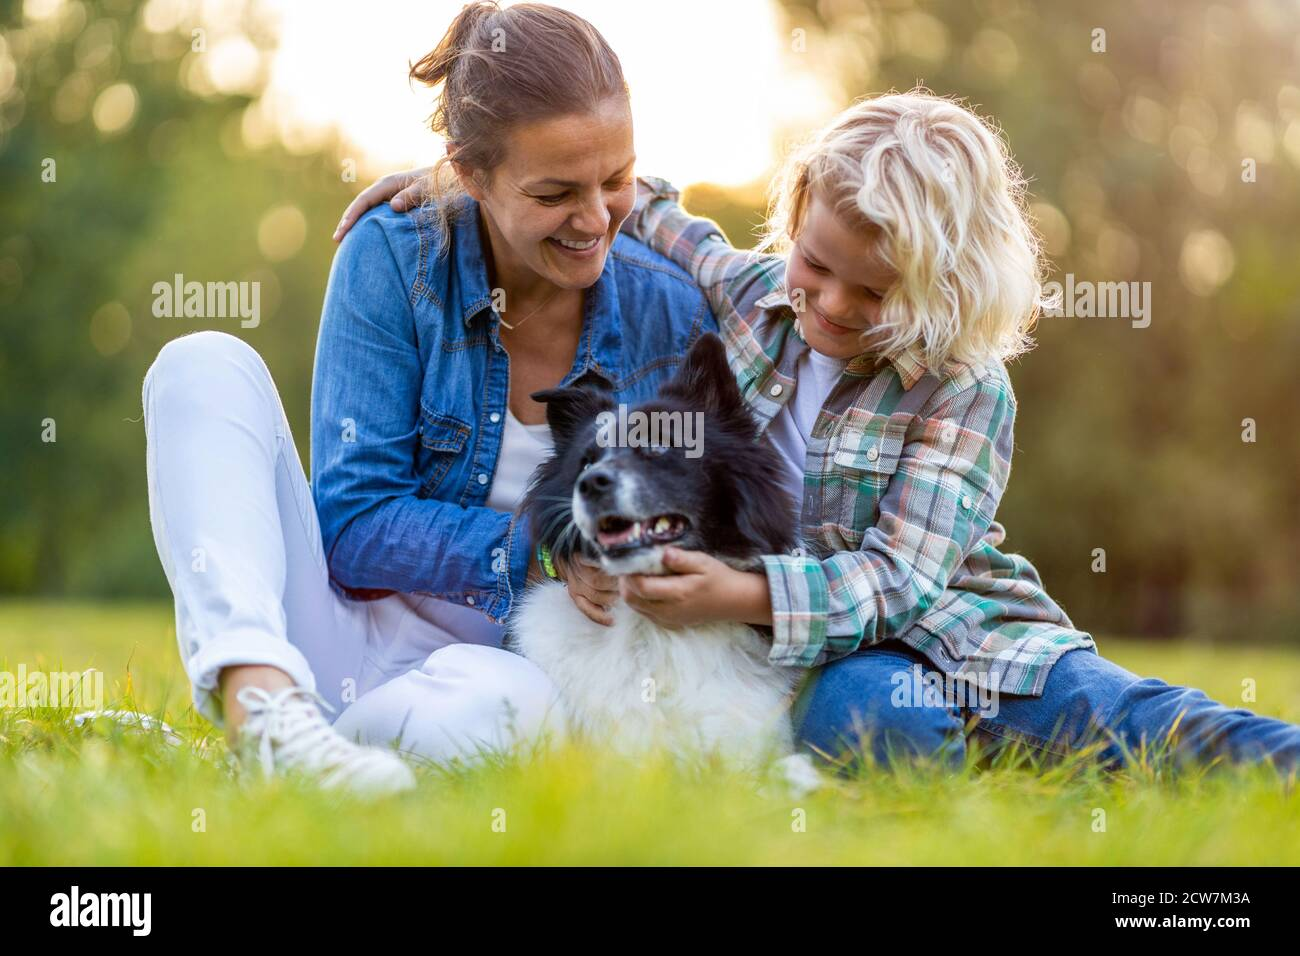 Happy mother and son outdoors petting their dog Stock Photo